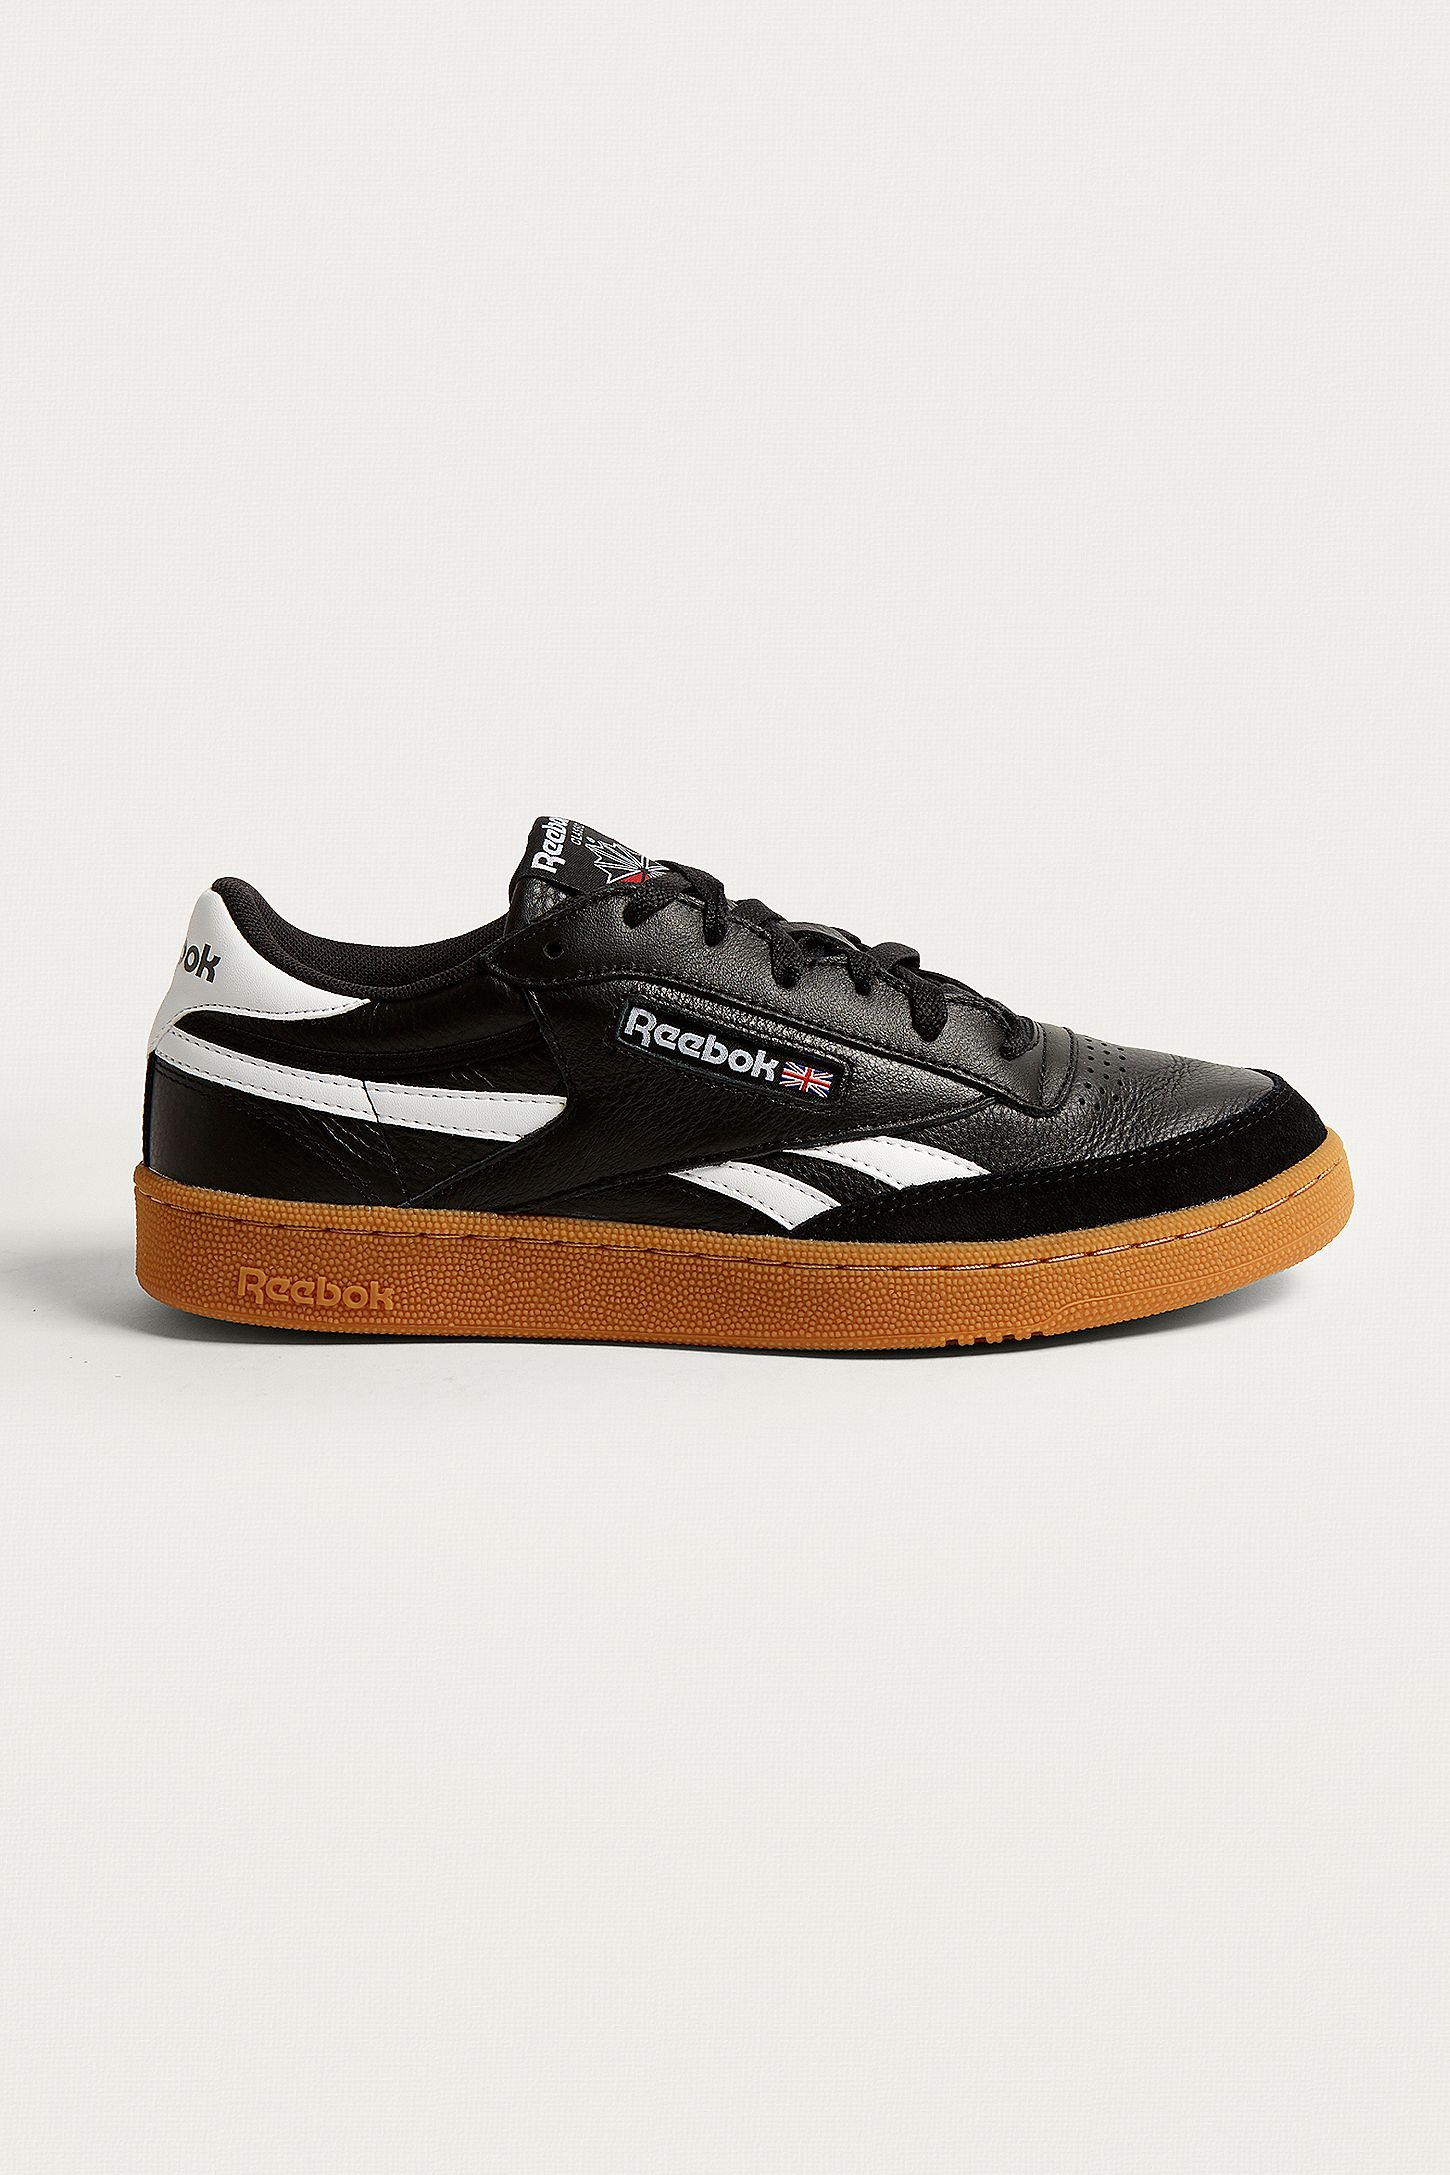 743cf493b93 Reebok Revenge Plus Black Gum Sole Trainers